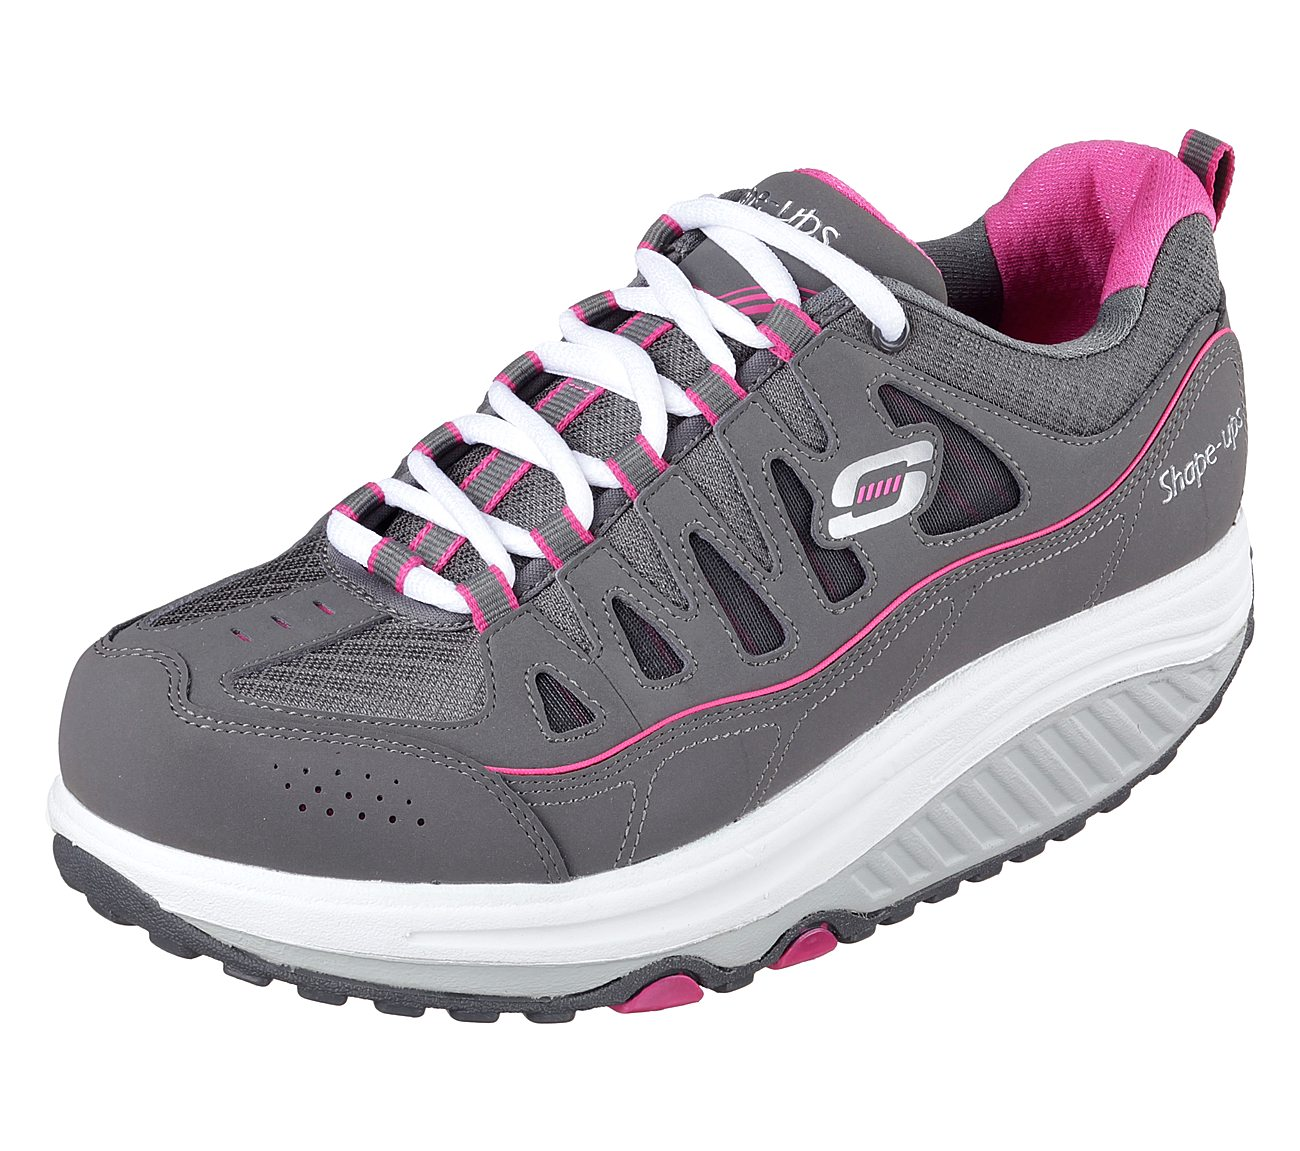 44556638097 Buy SKECHERS Shape-ups 2.0 - Comfort Stride Shape-ups Shoes only  100.00